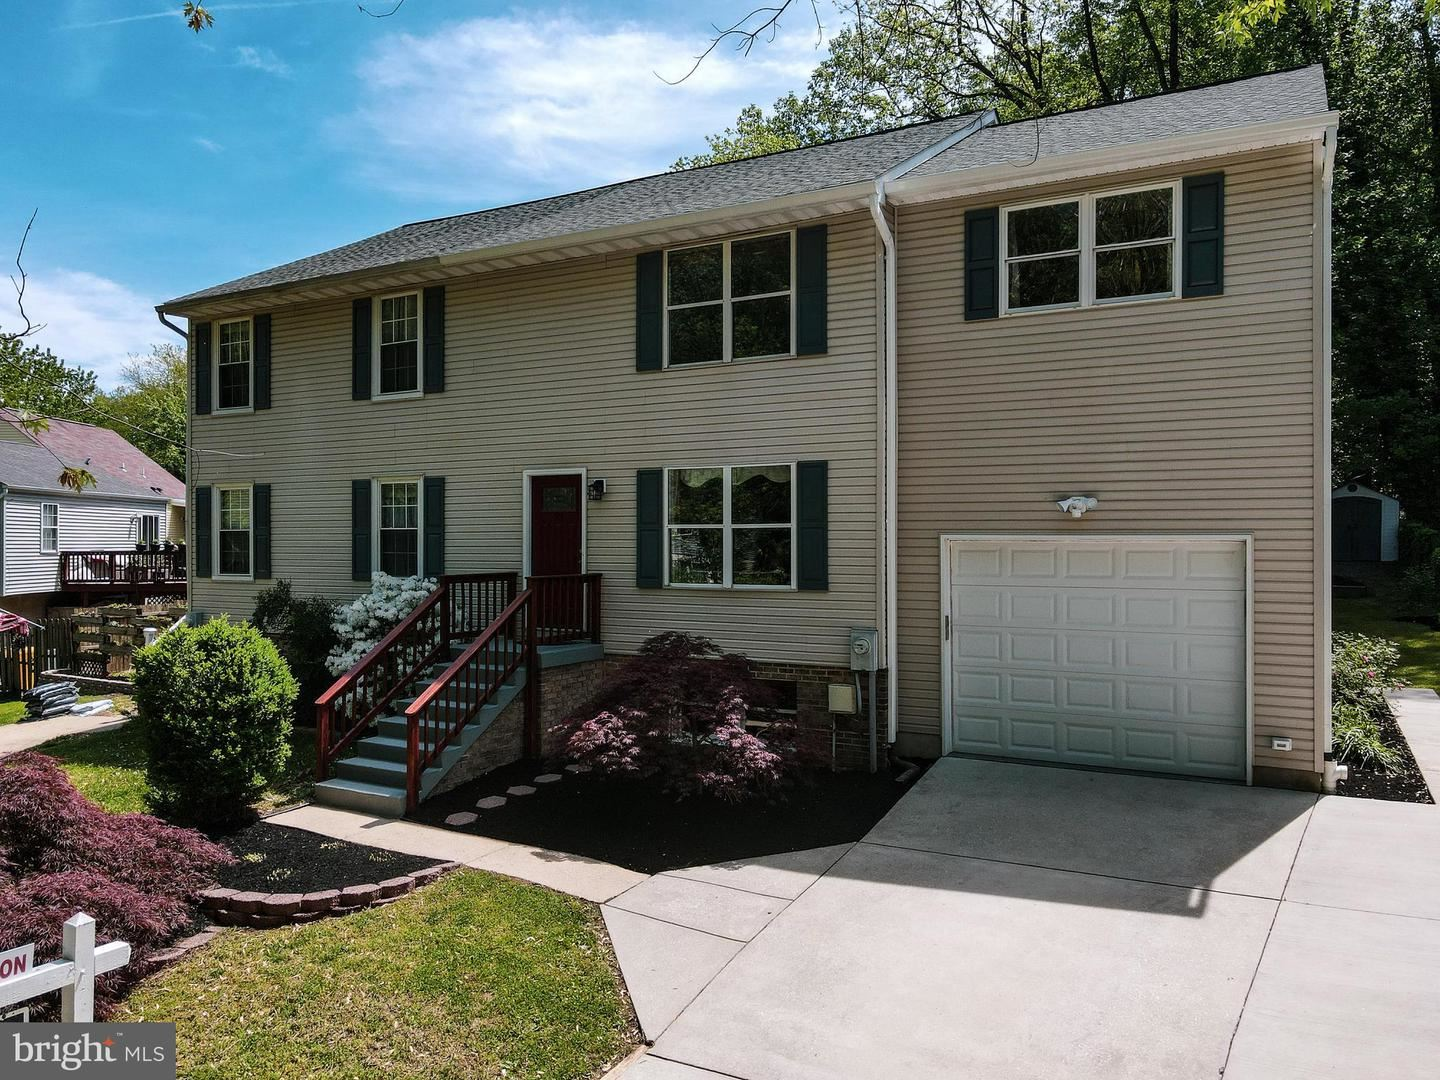 93 BARRENSDALE DR, Severna Park, MD 21146 - MLS#: MDAA465782